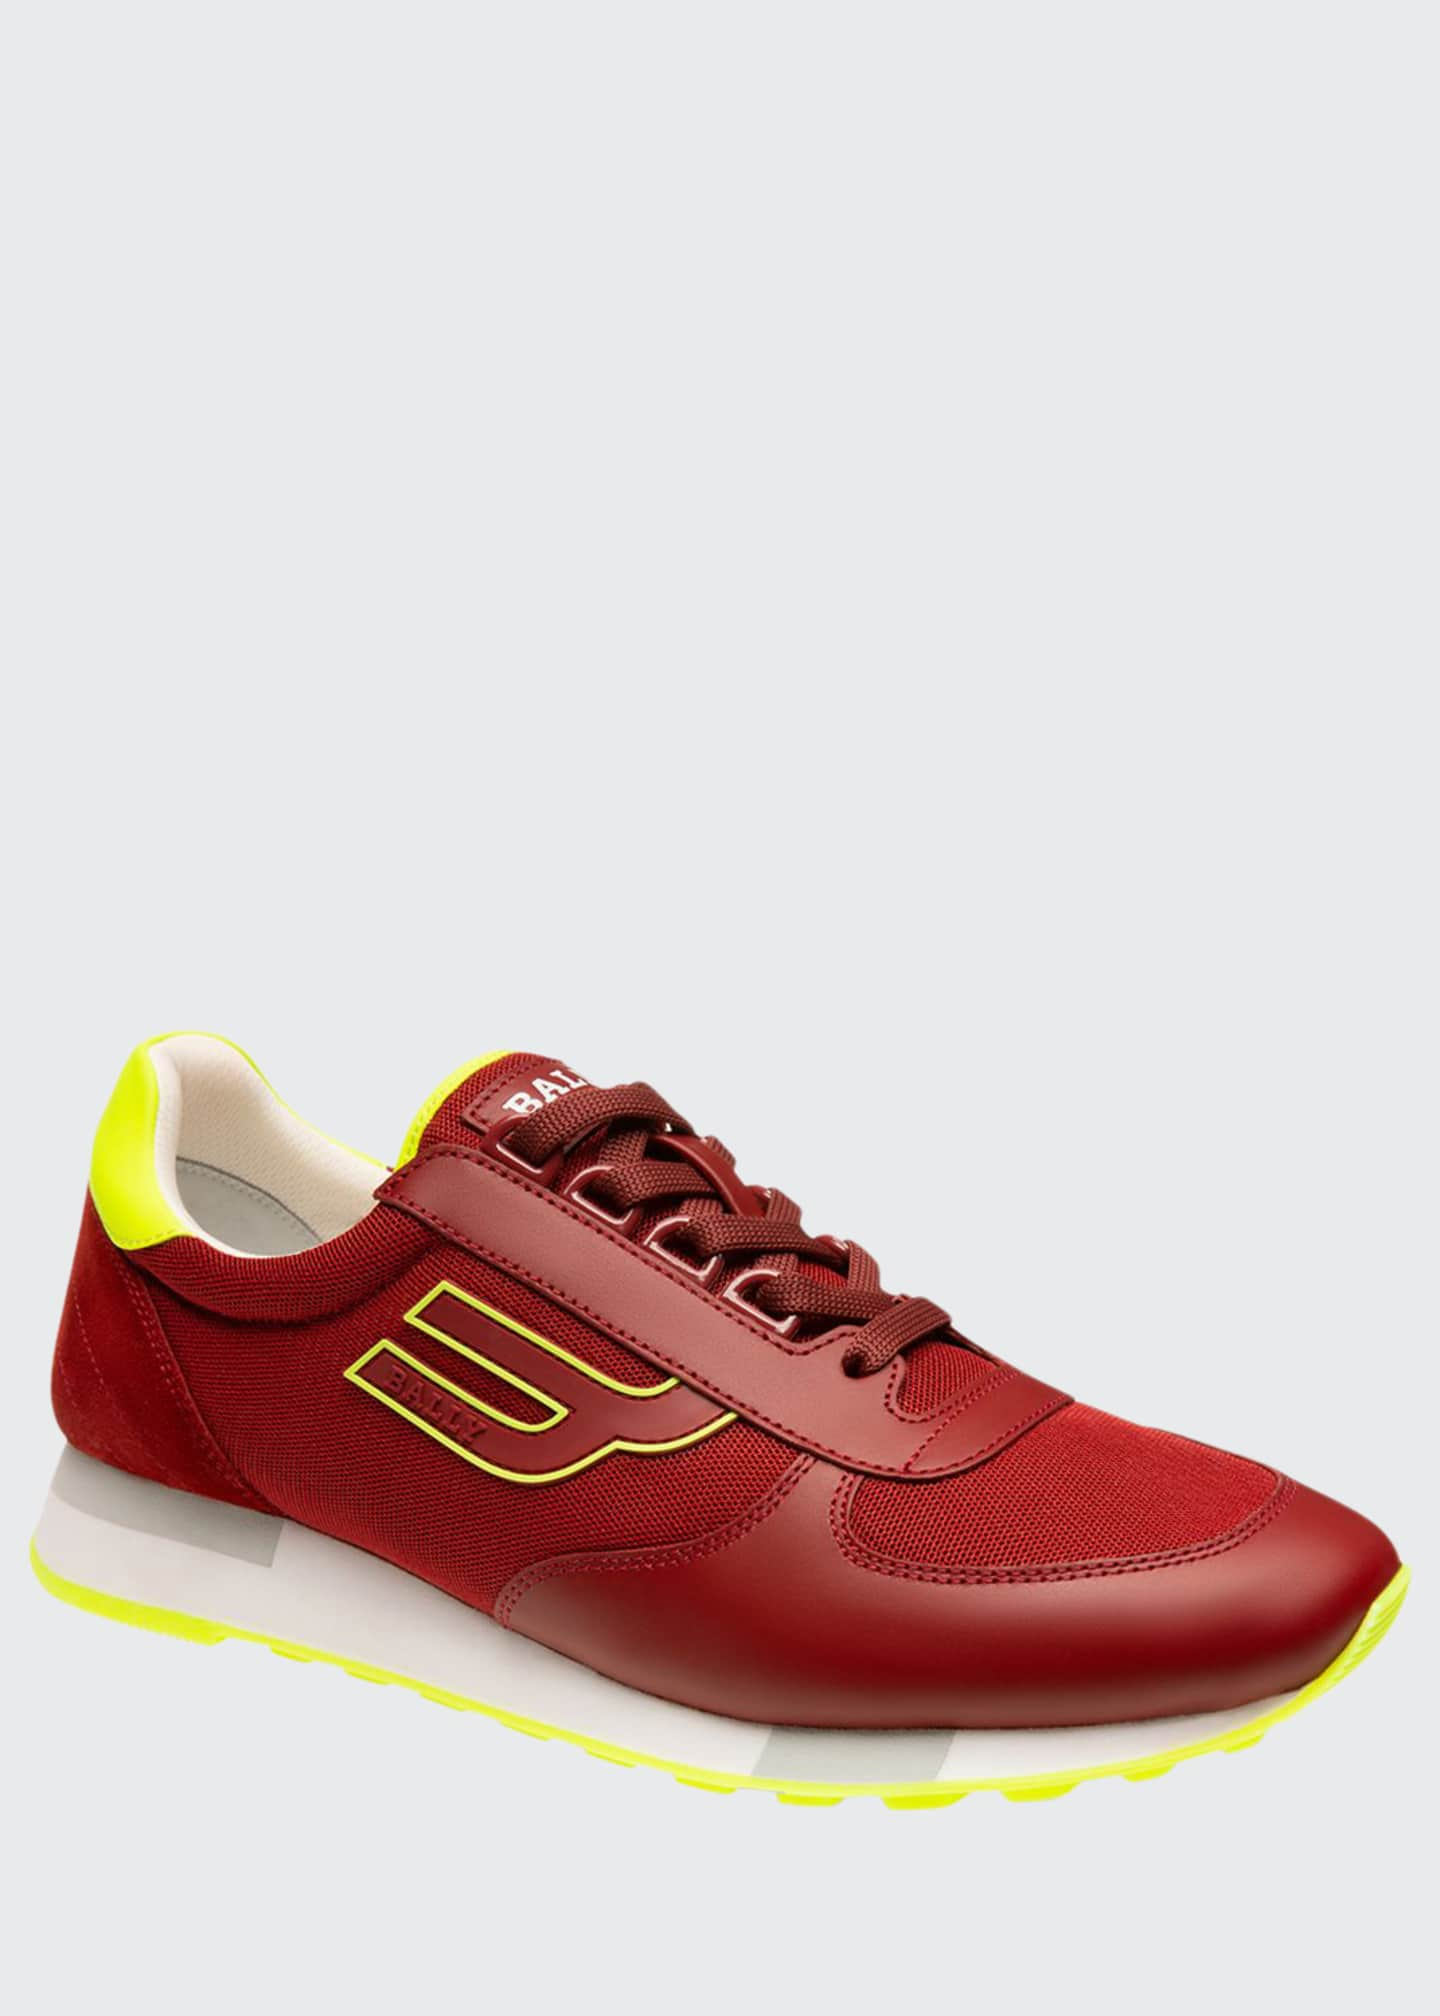 Bally Men's Gavino Tennis Retro Running Sneakers